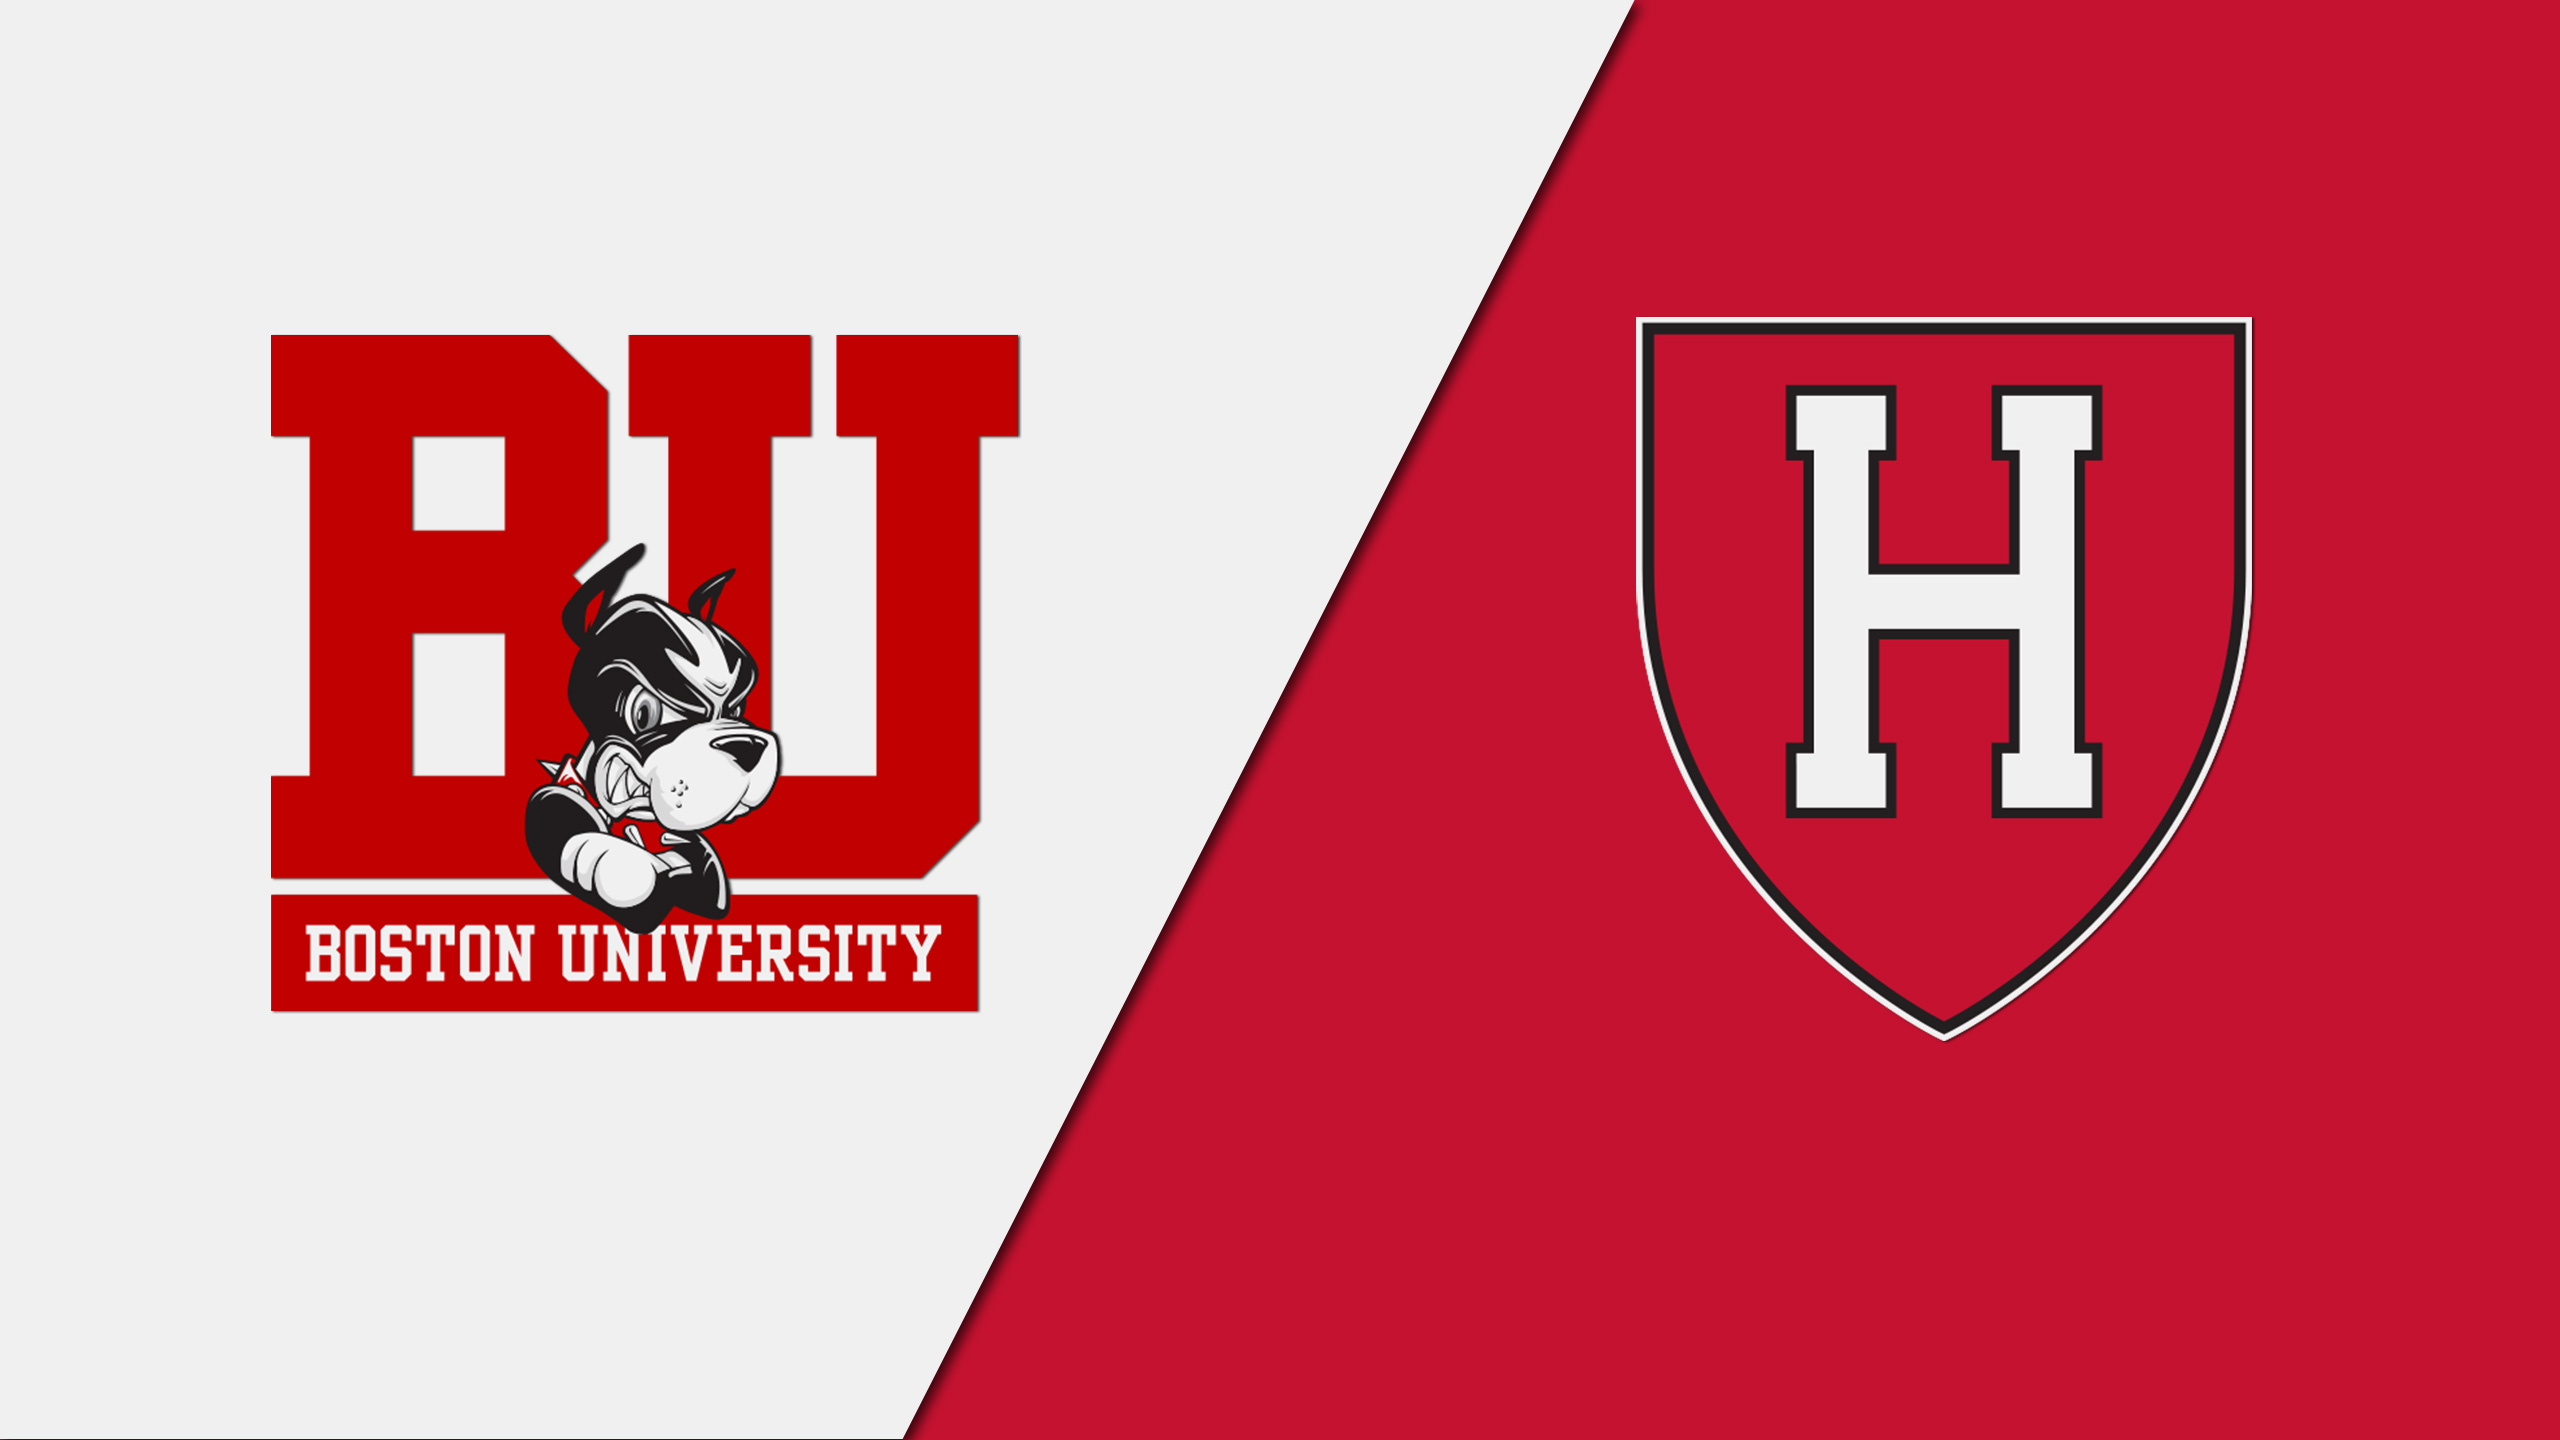 Boston University vs. Harvard (Court 6)